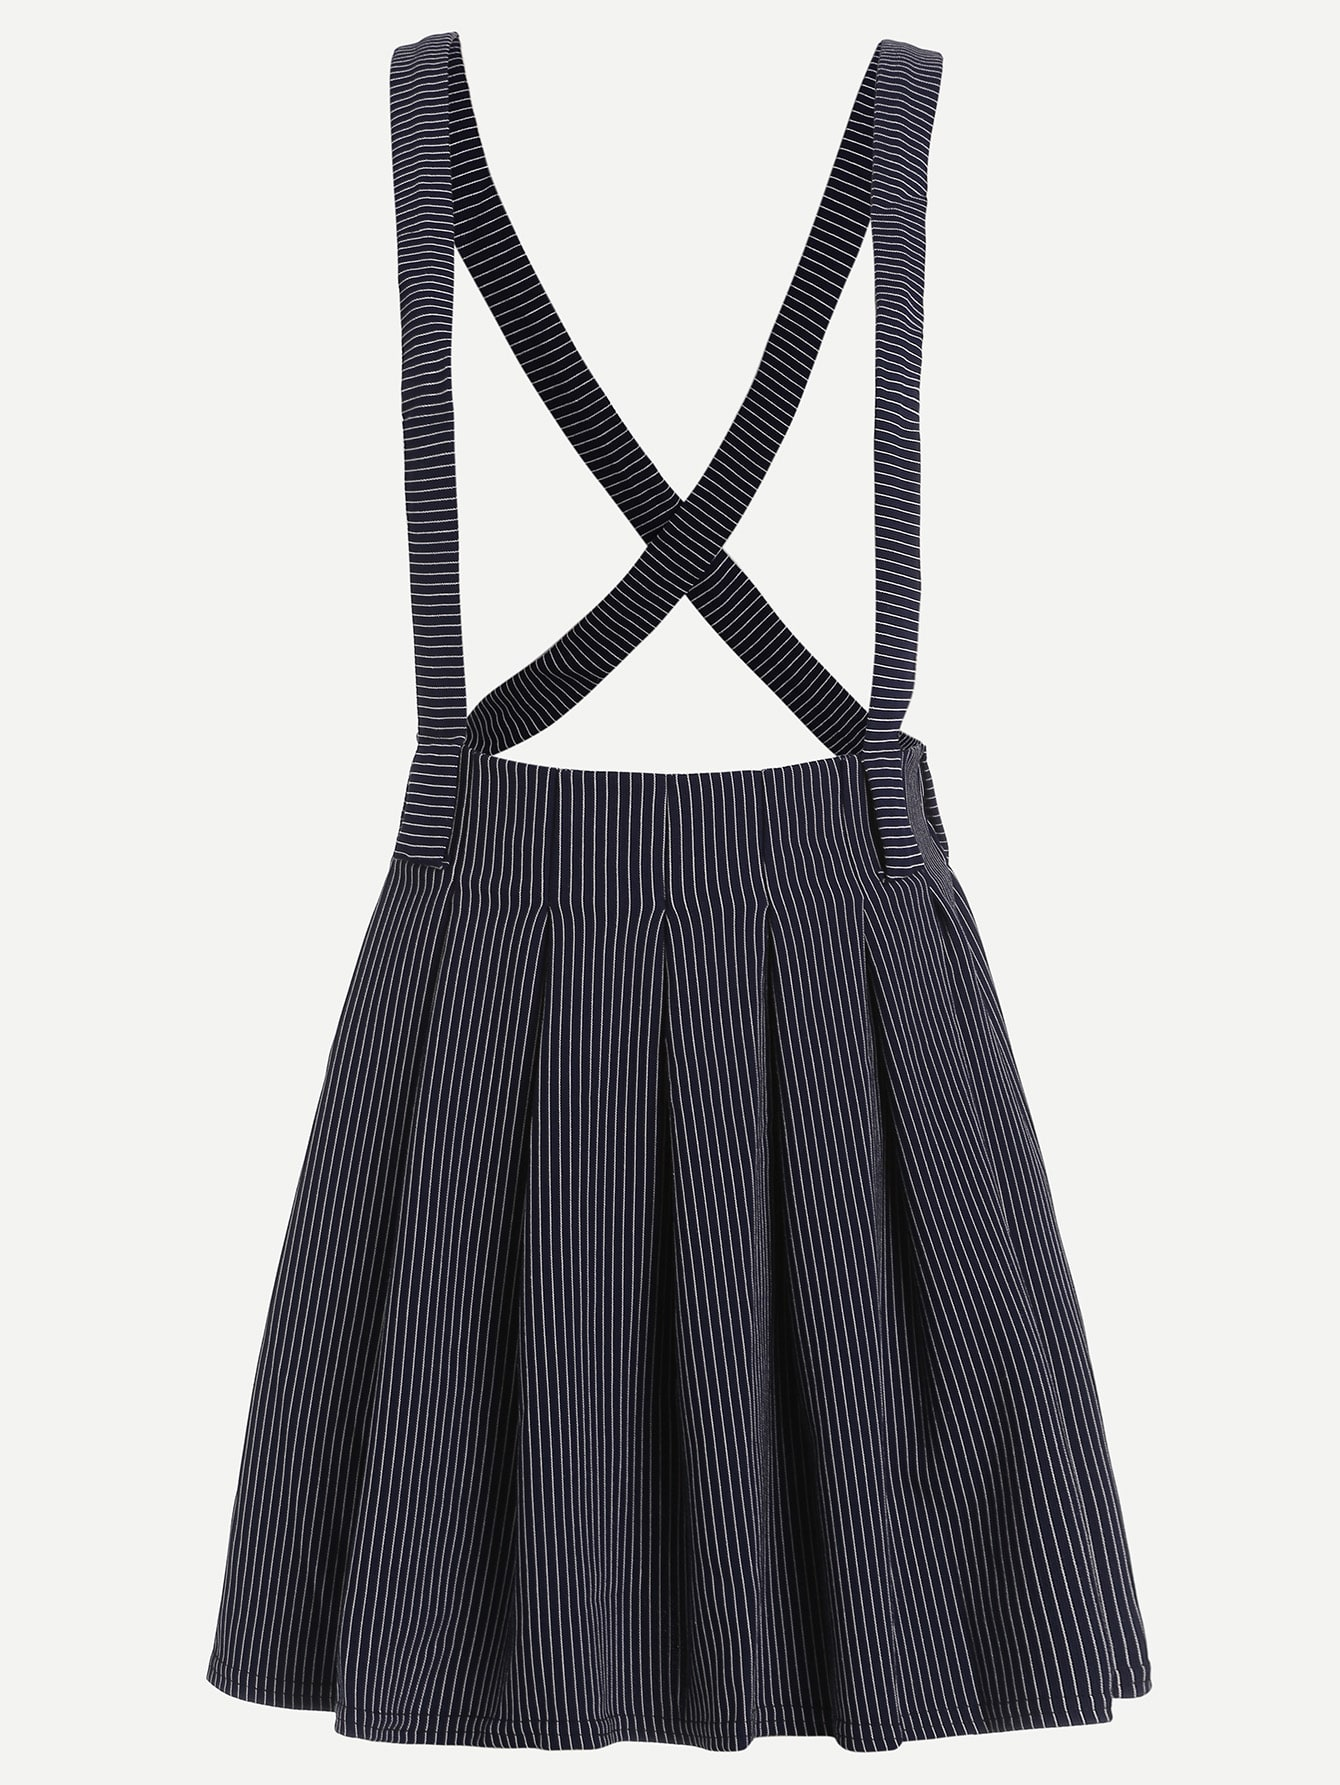 Navy Striped Suspender Pleated Skirt